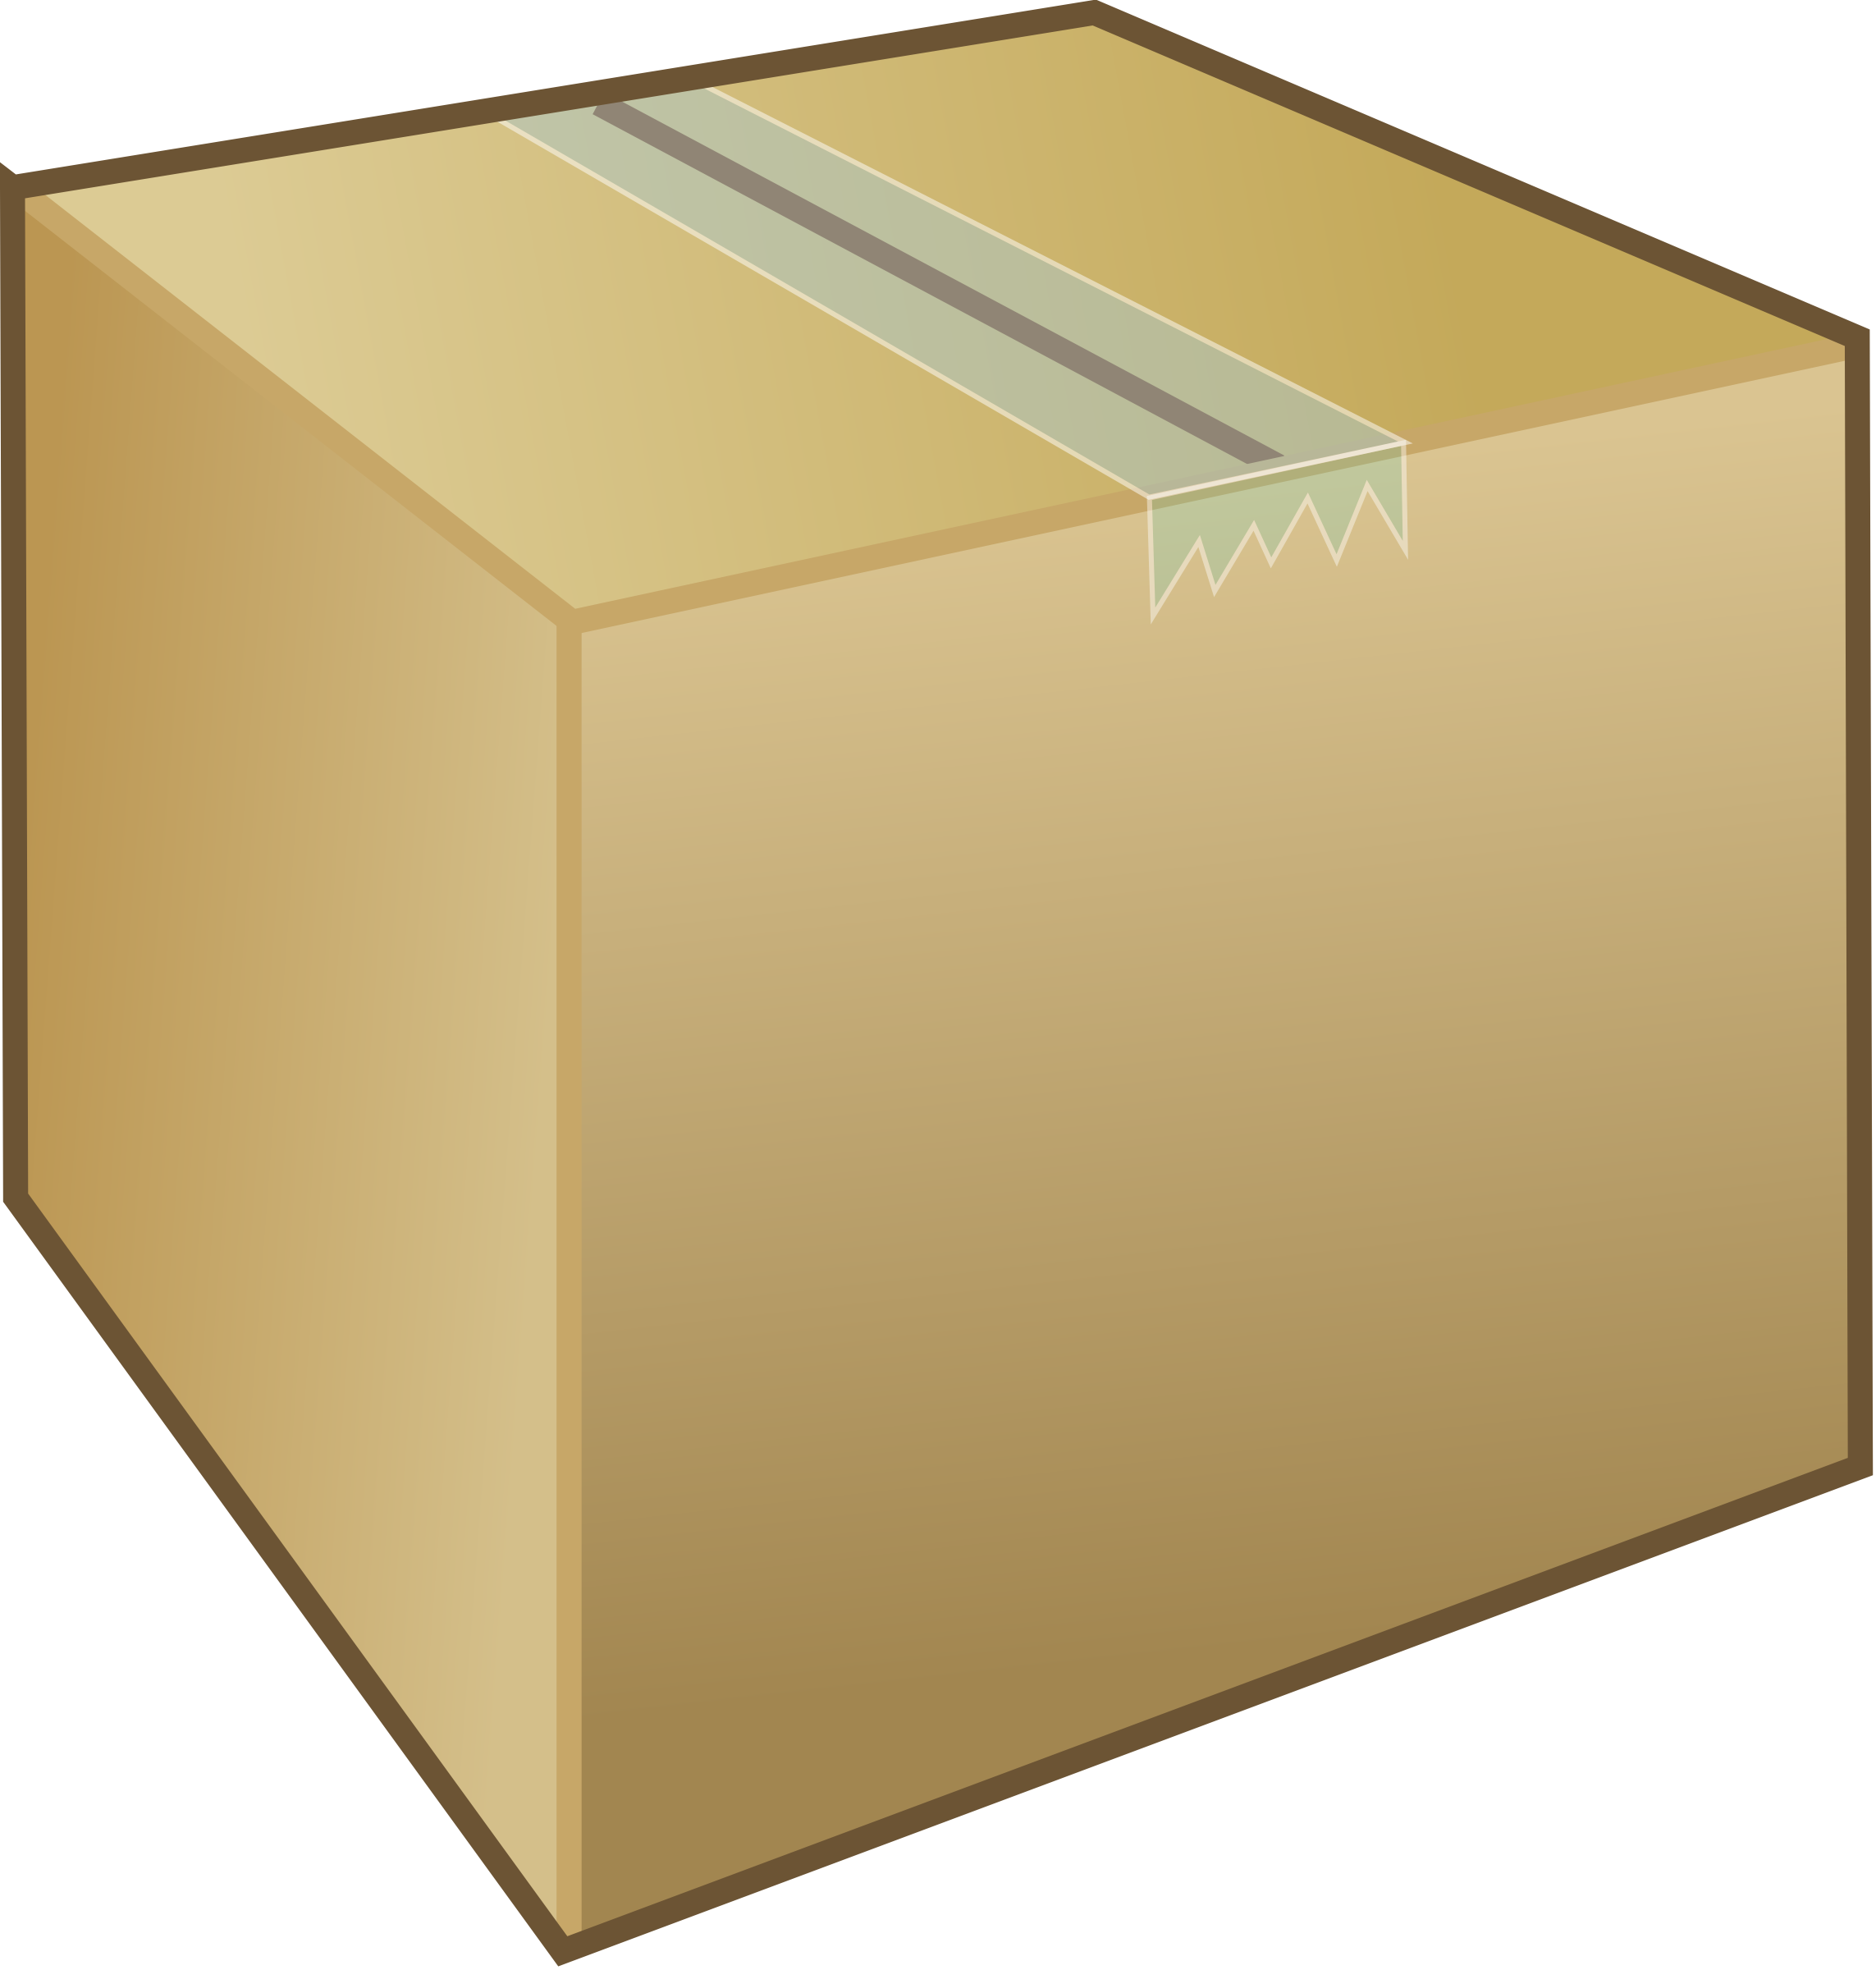 Box clipart #5, Download drawings